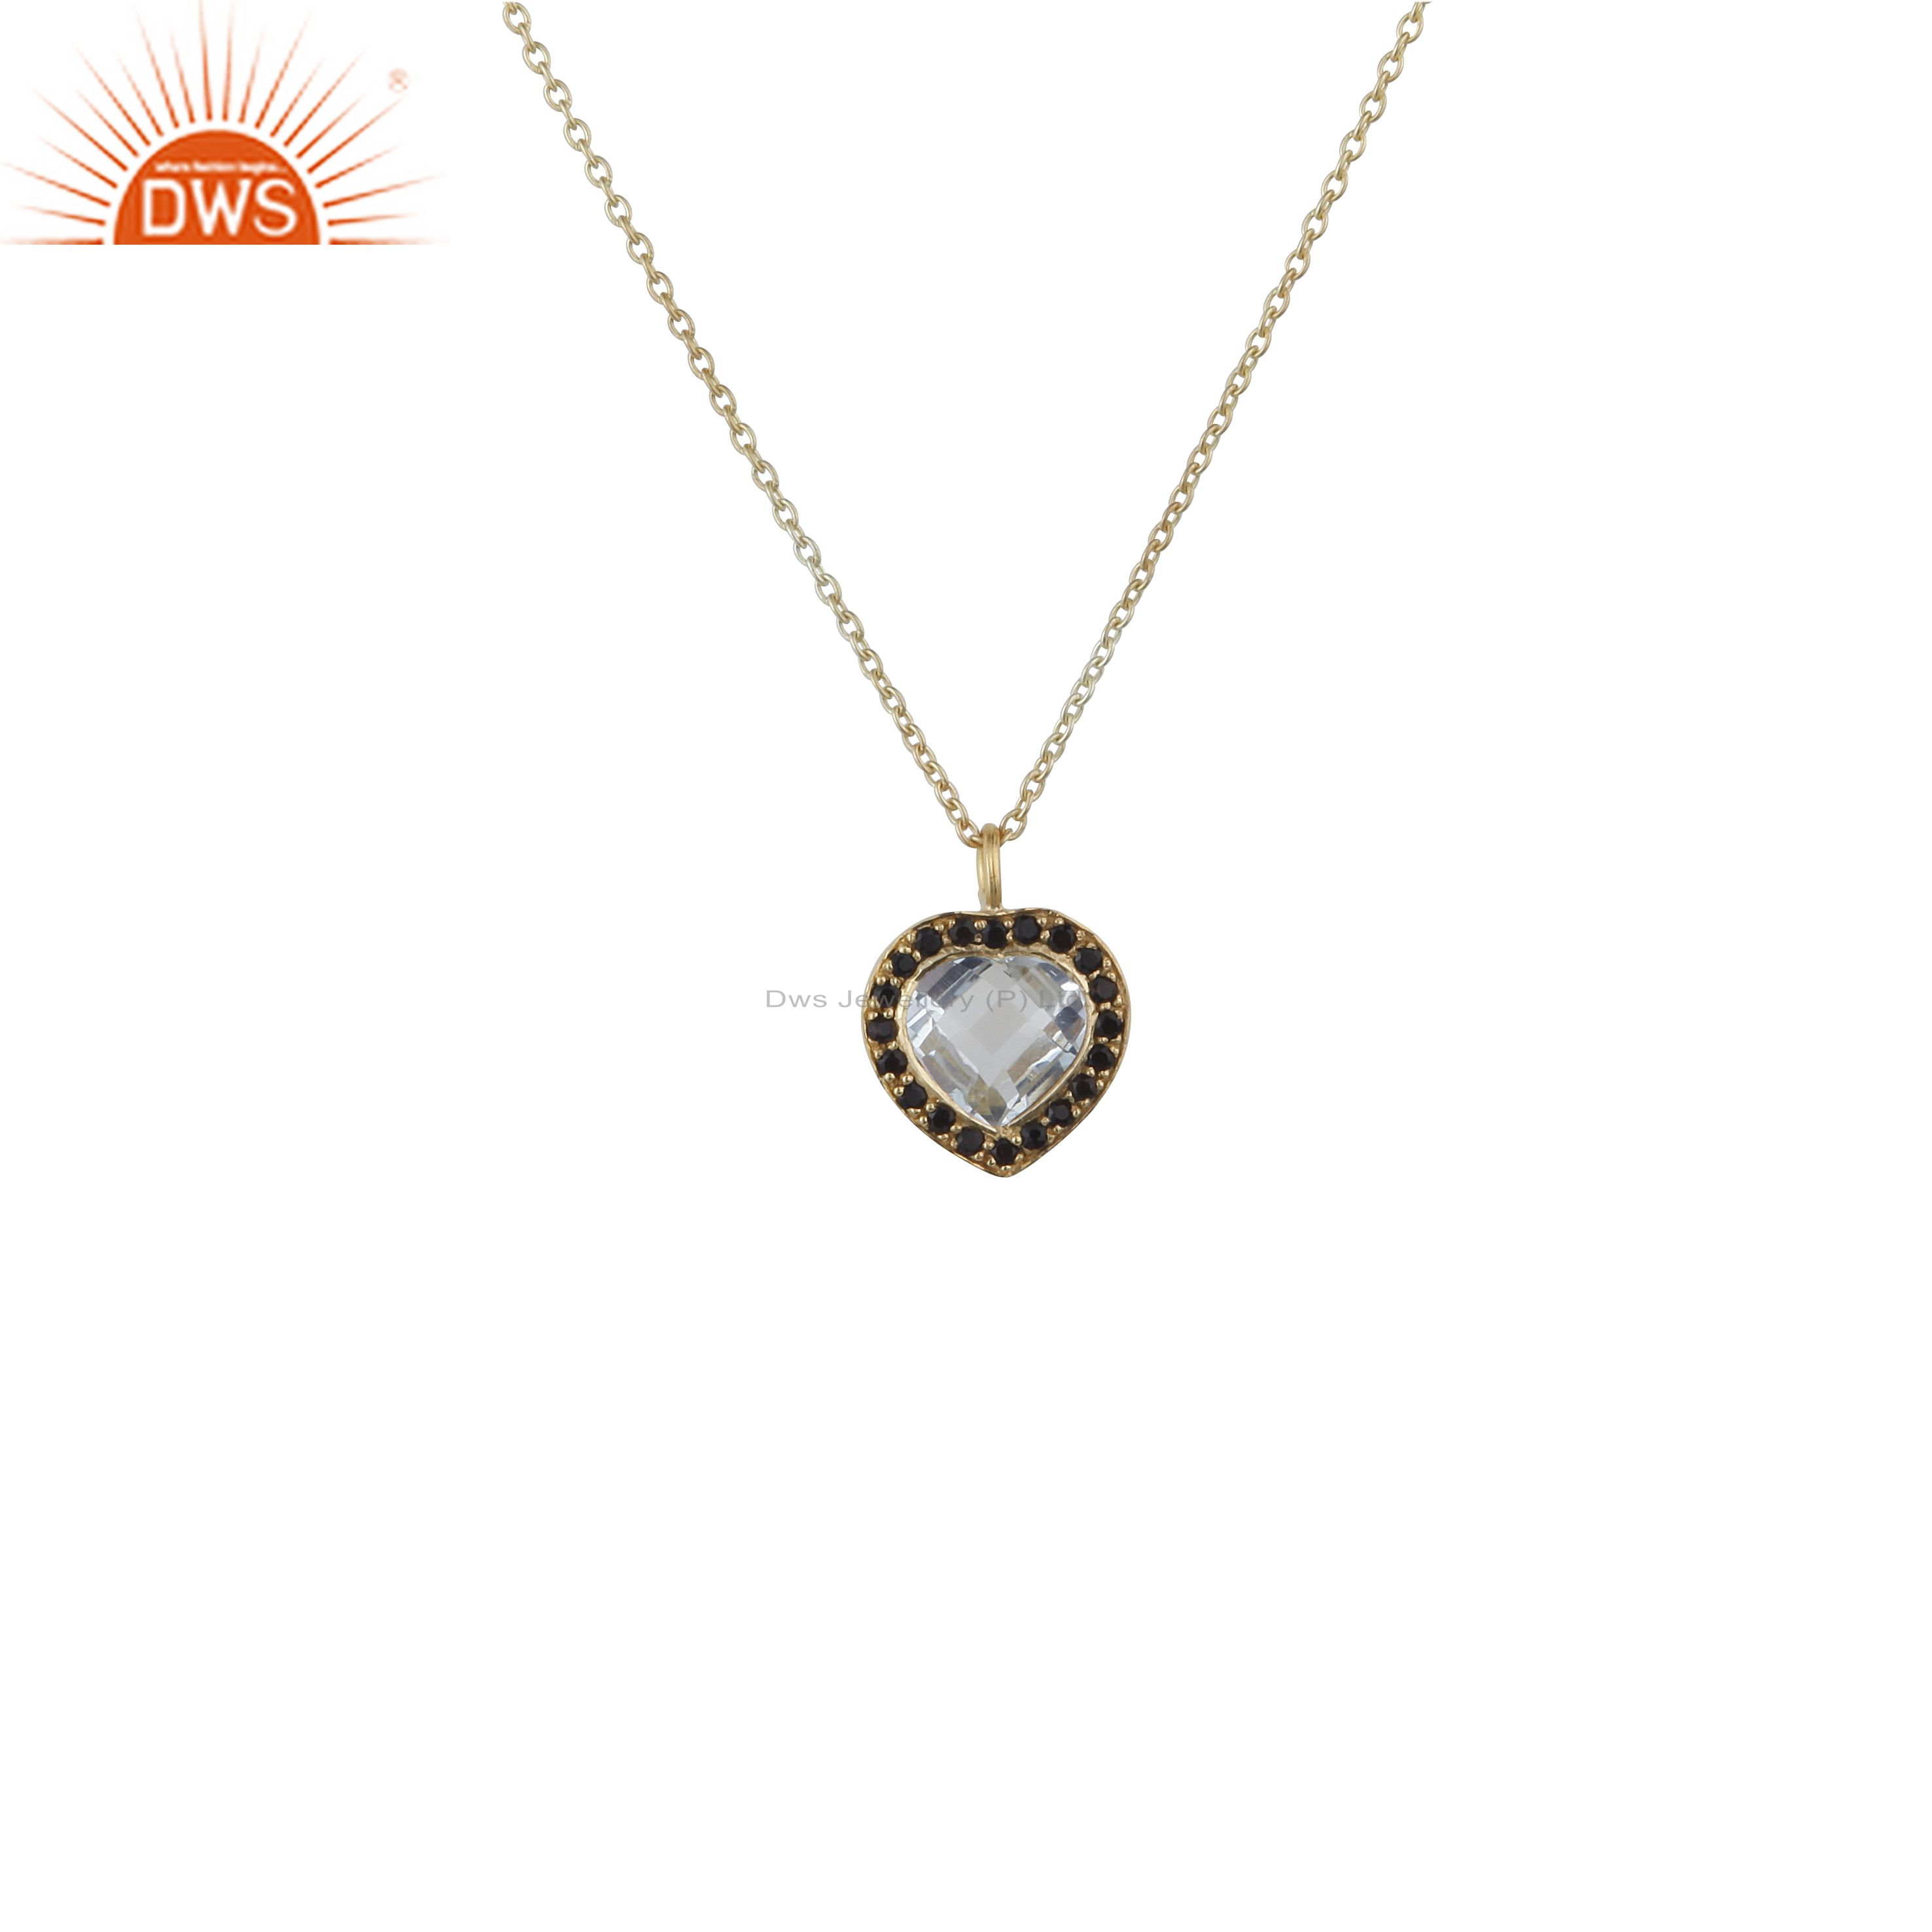 18k gold plated sterling silver crystal quartz and white topaz pendant necklace